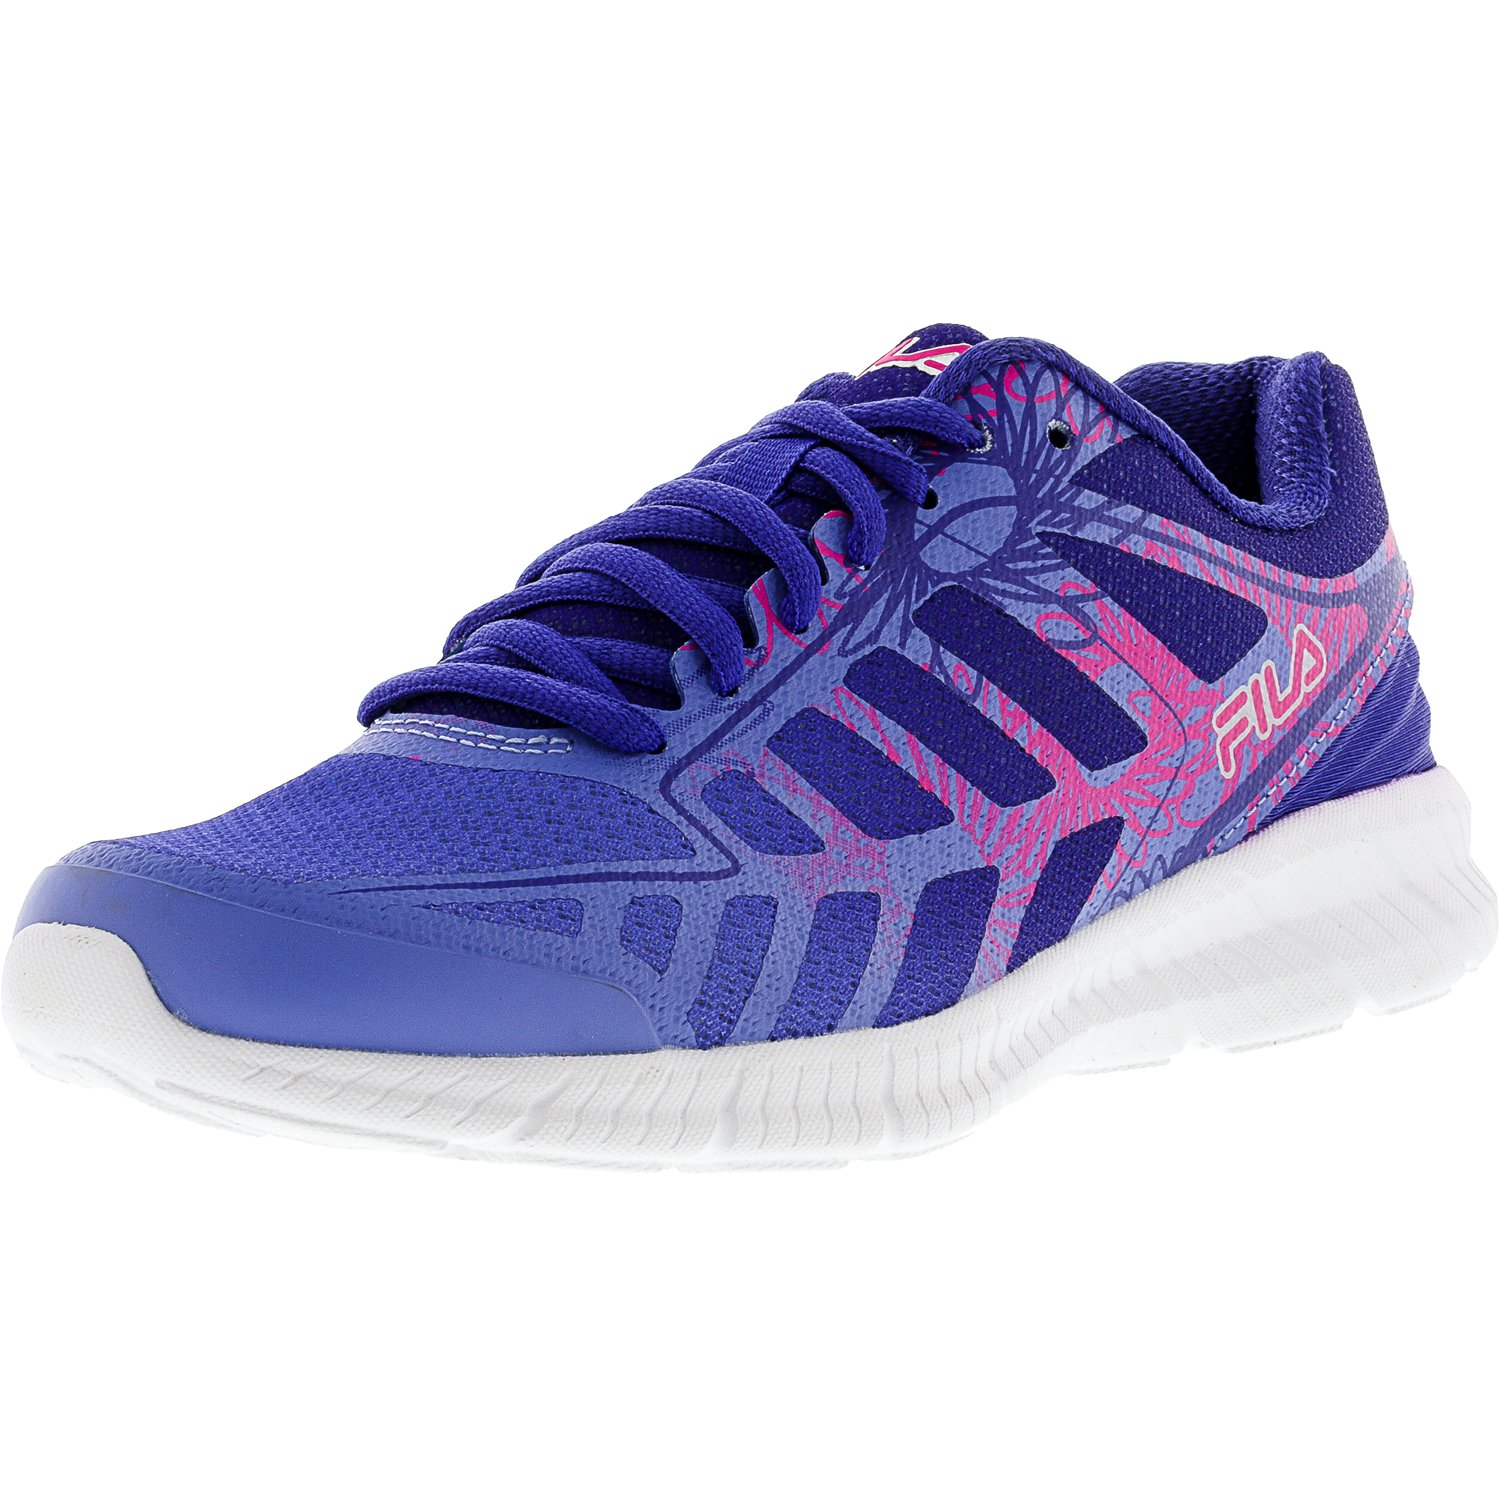 Fila Fila Women's Memory Finity 2 Print Wedgewood Royal Blue Pink Glow Ankle High Running Shoe 7M